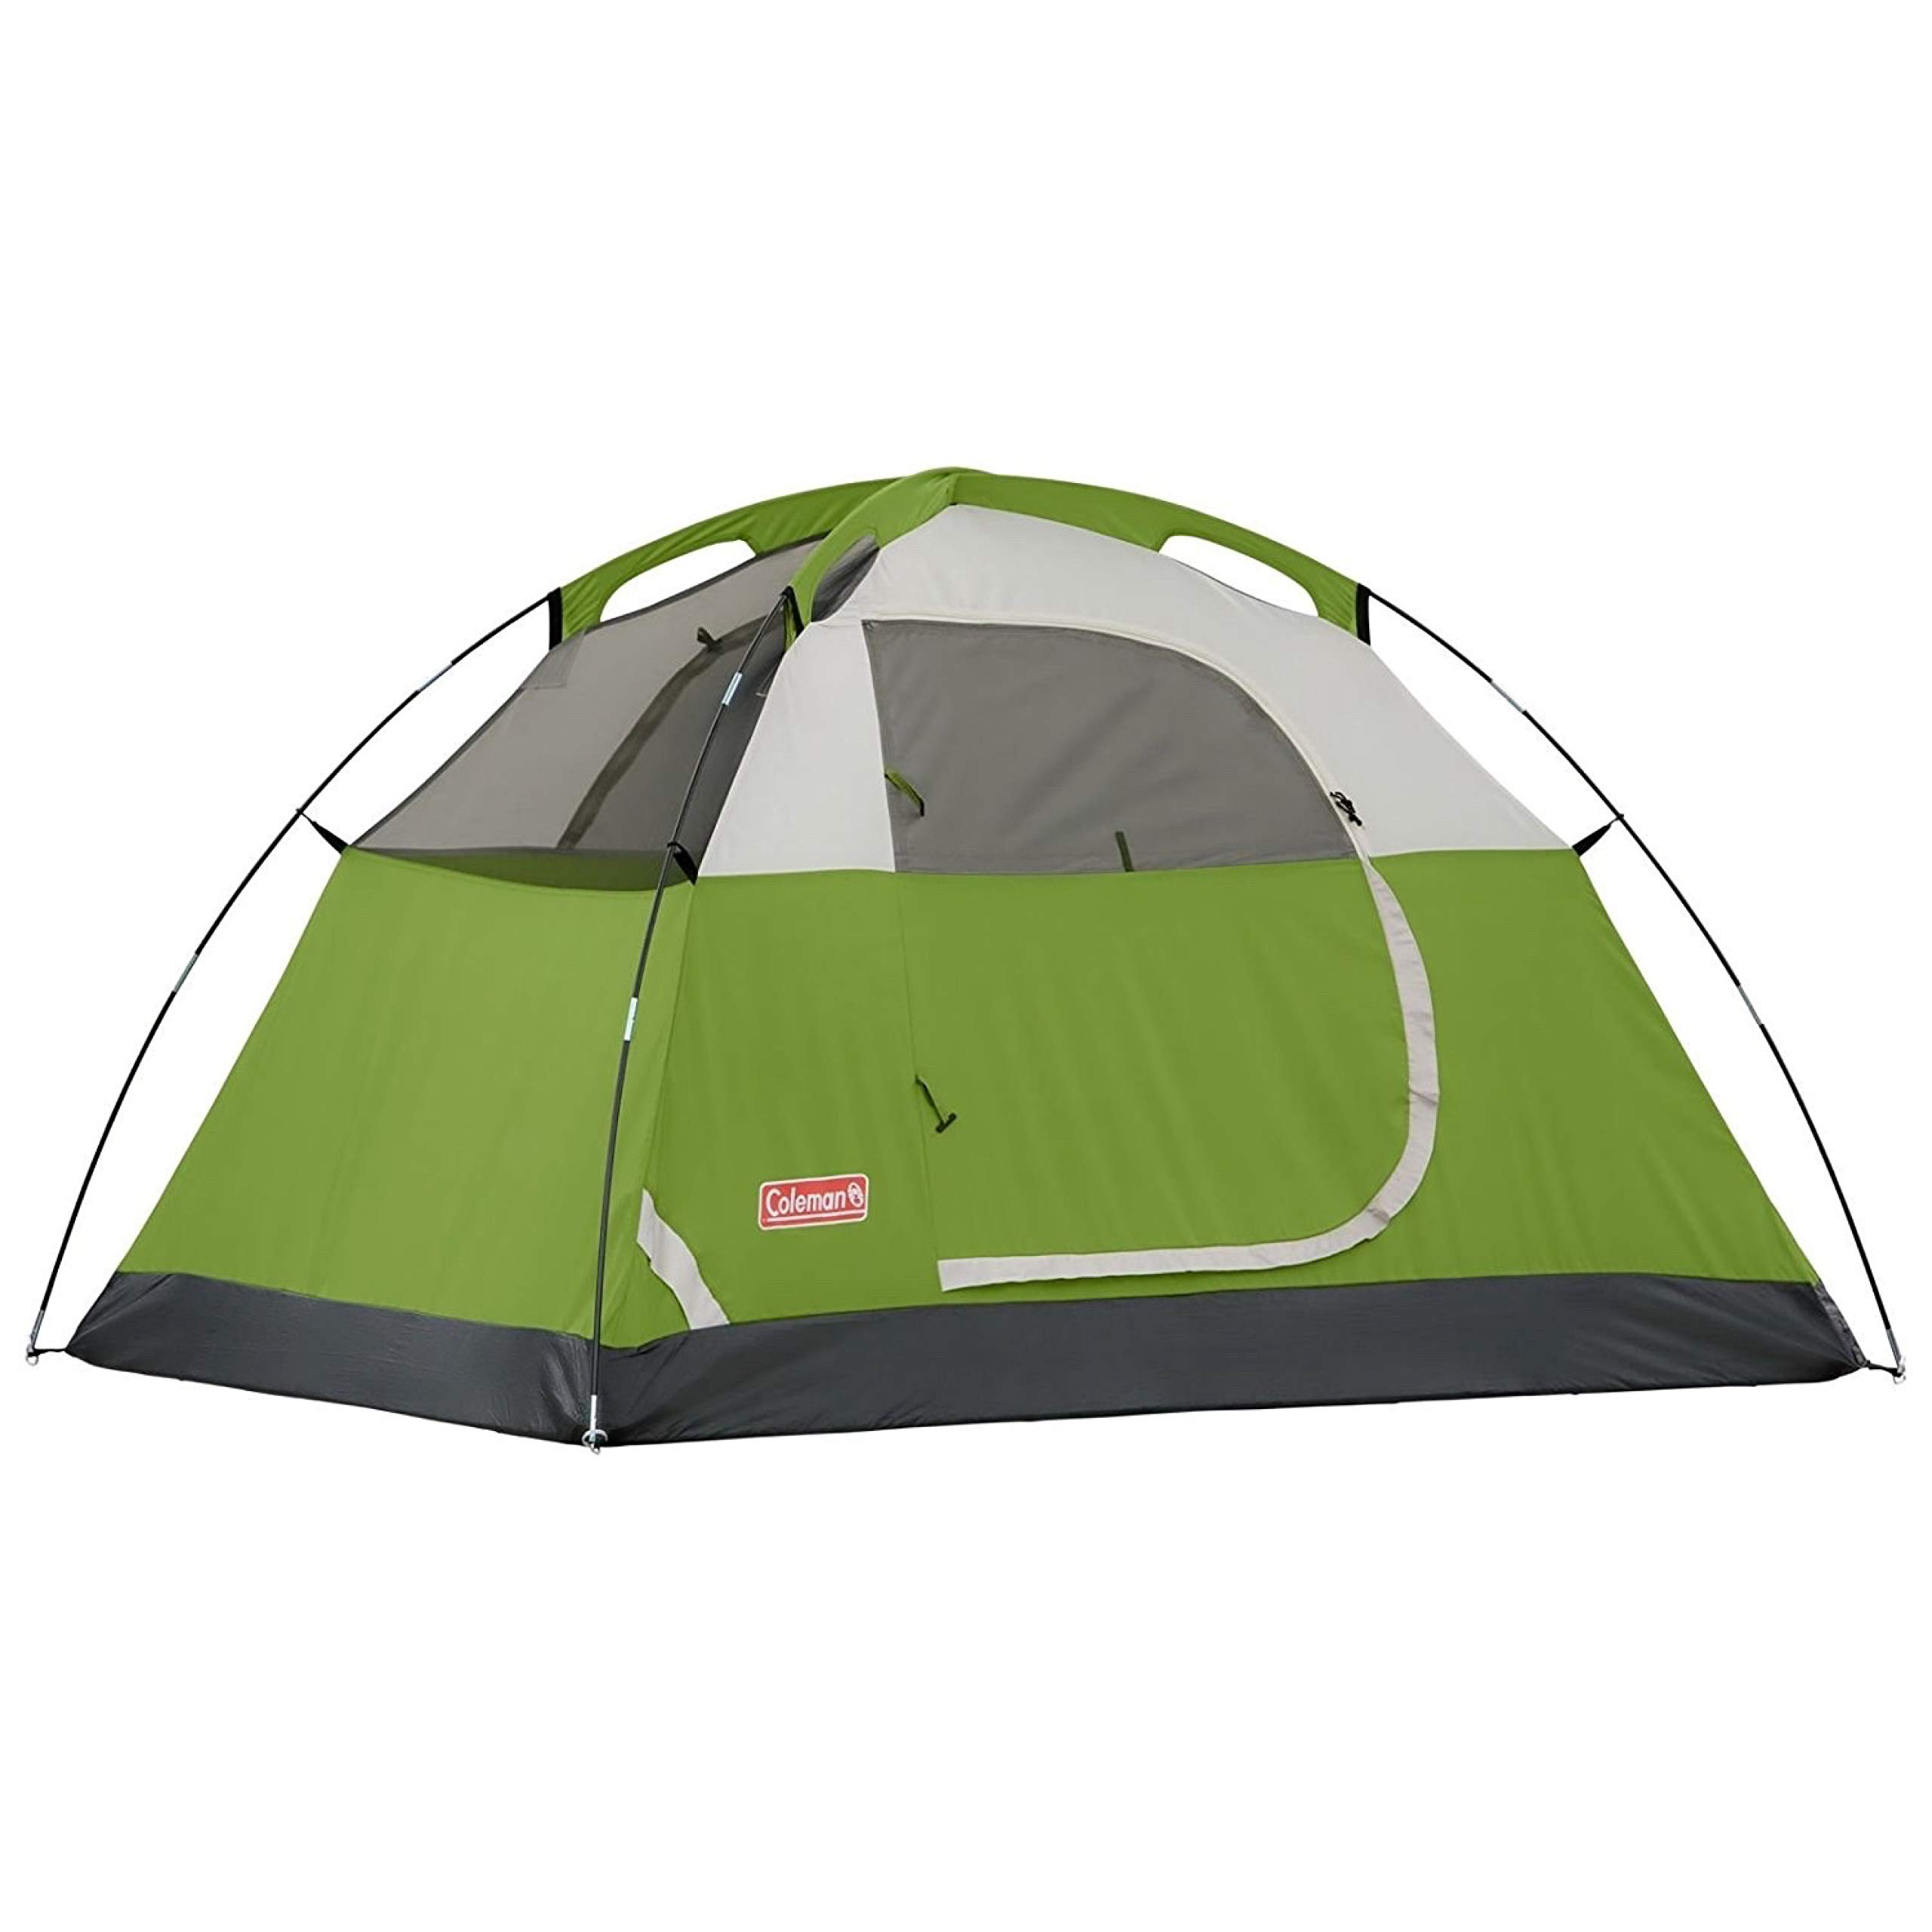 Coleman 2-Person Sundome Tent Green  sc 1 st  BSA Soar & Coleman 2-Person Sundome Tent Green - BSA Soar